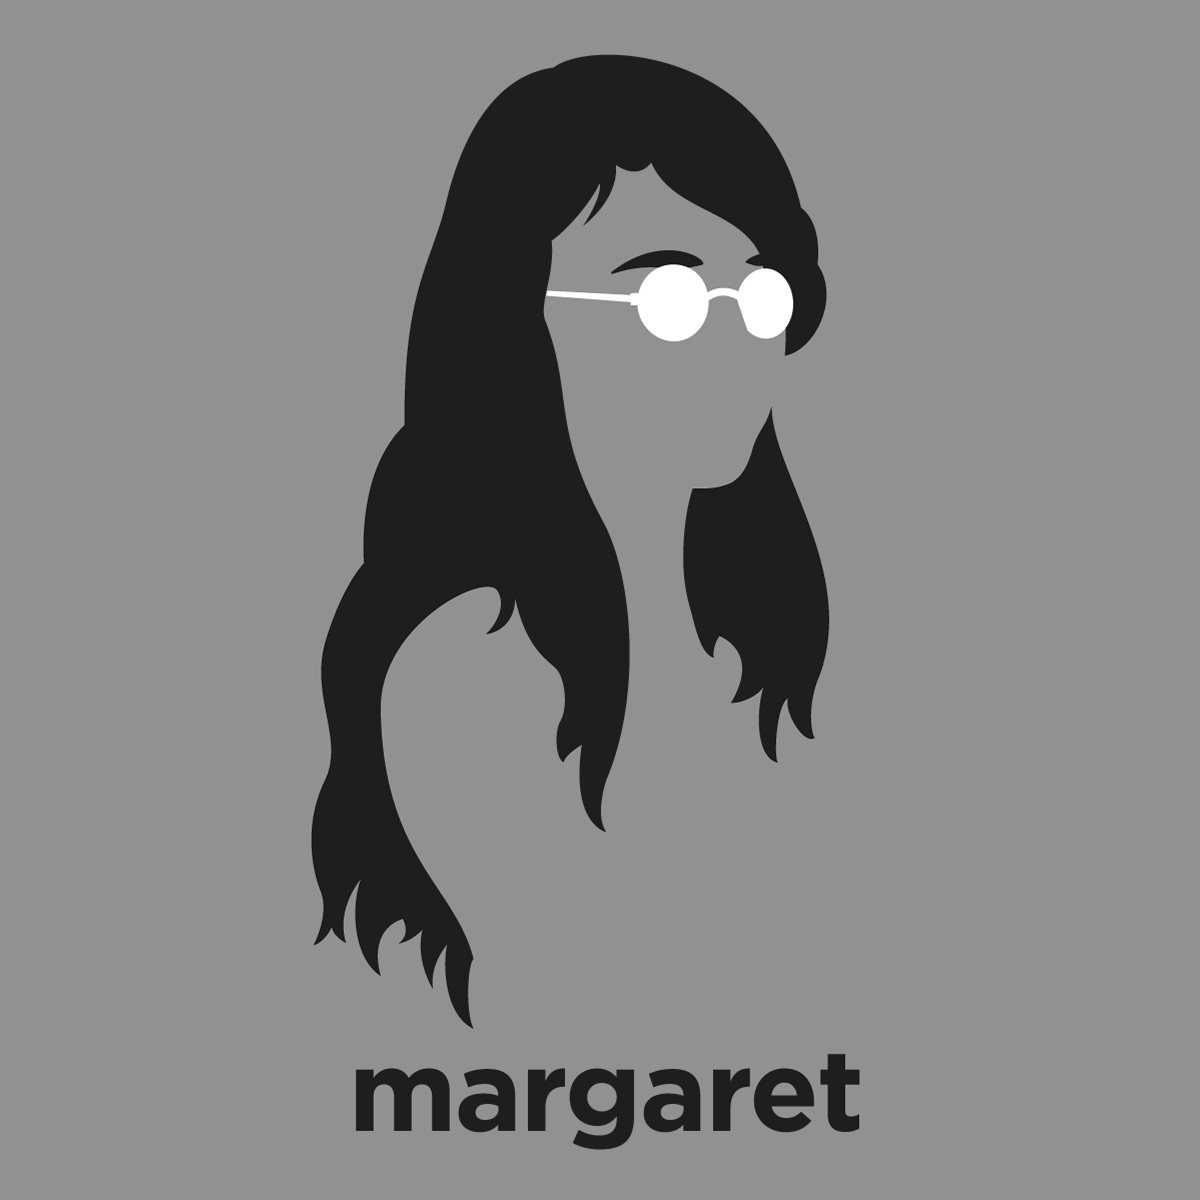 Design your own t-shirt hamilton - A T Shirt With A Minimalist Hair Based Illustration Of Margaret Hamilton The Computer